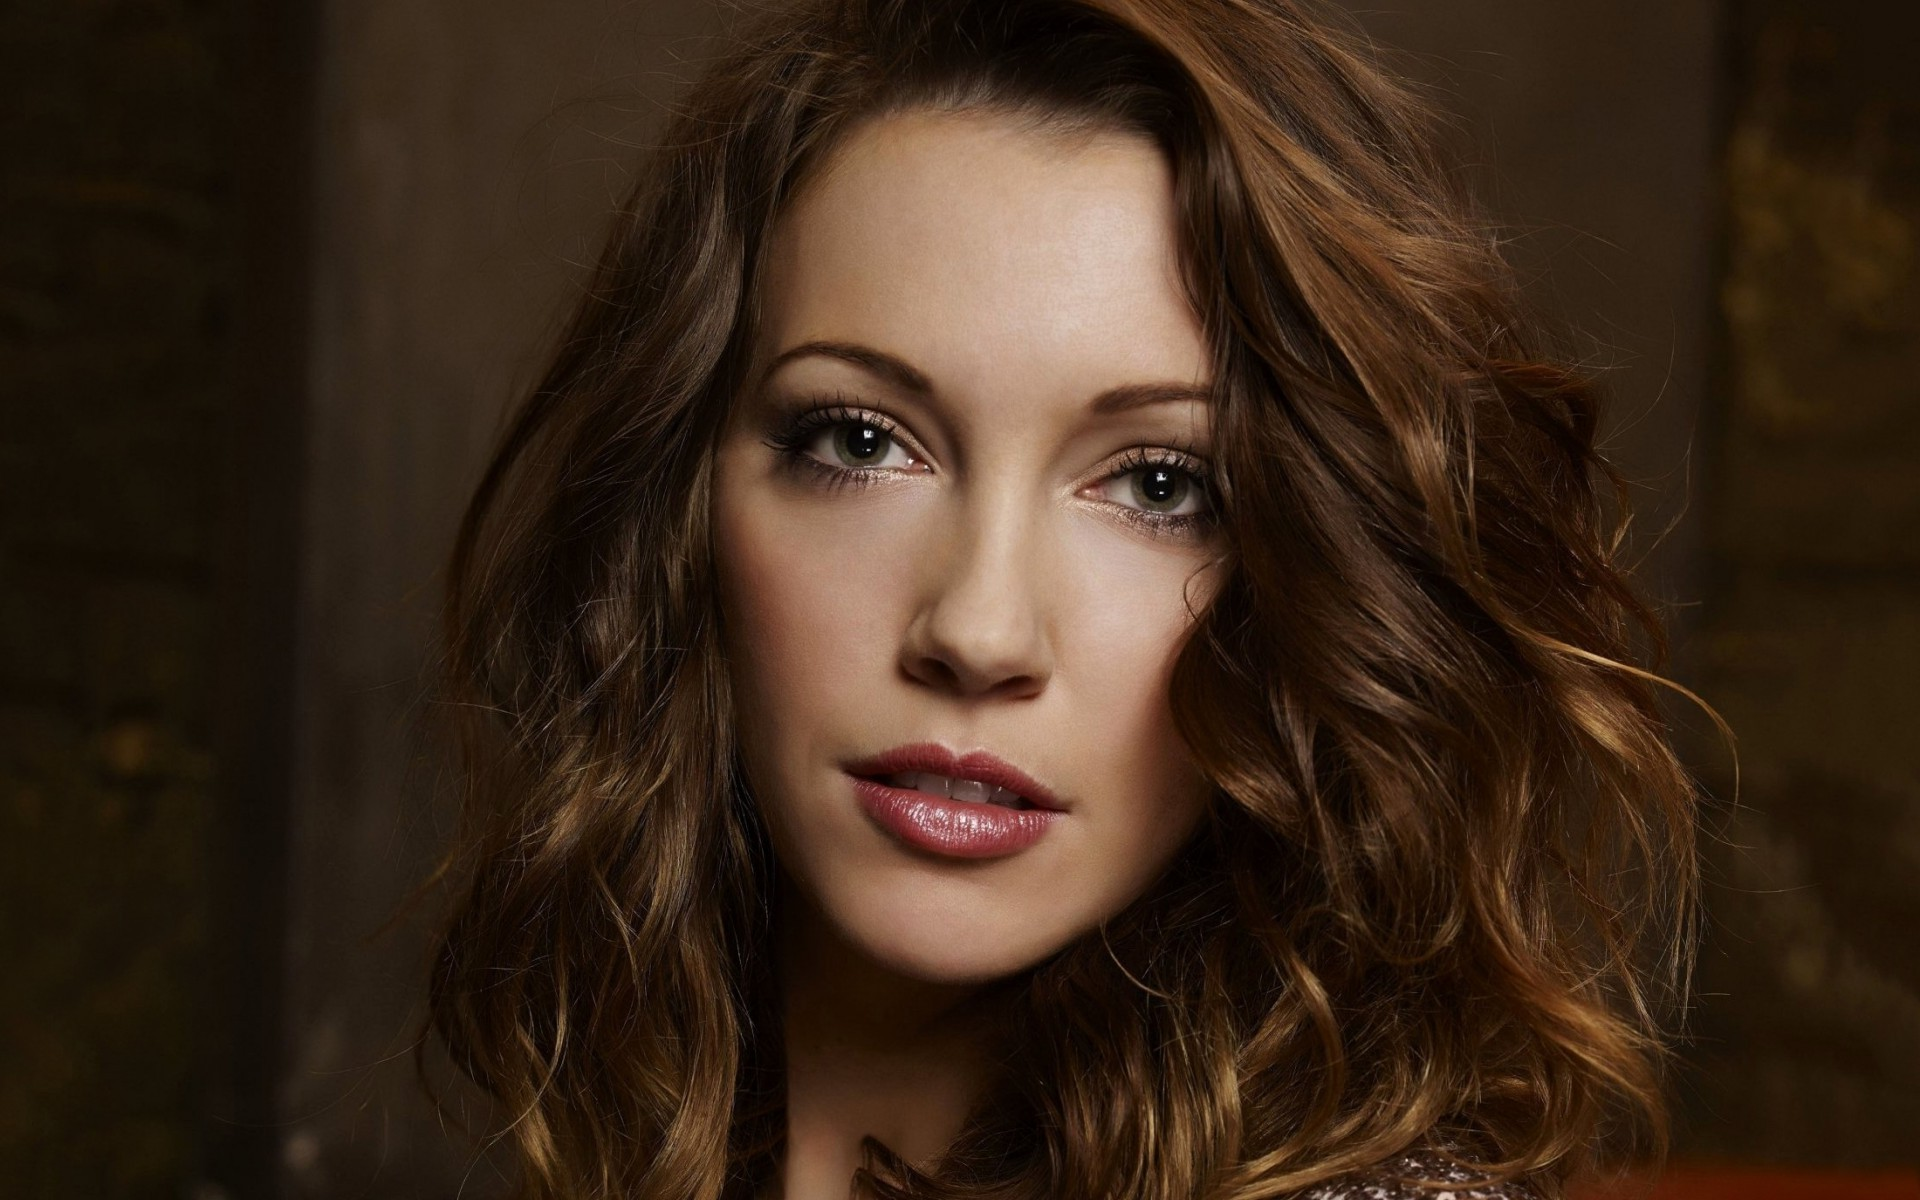 Katie Cassidy HQ wallpapers